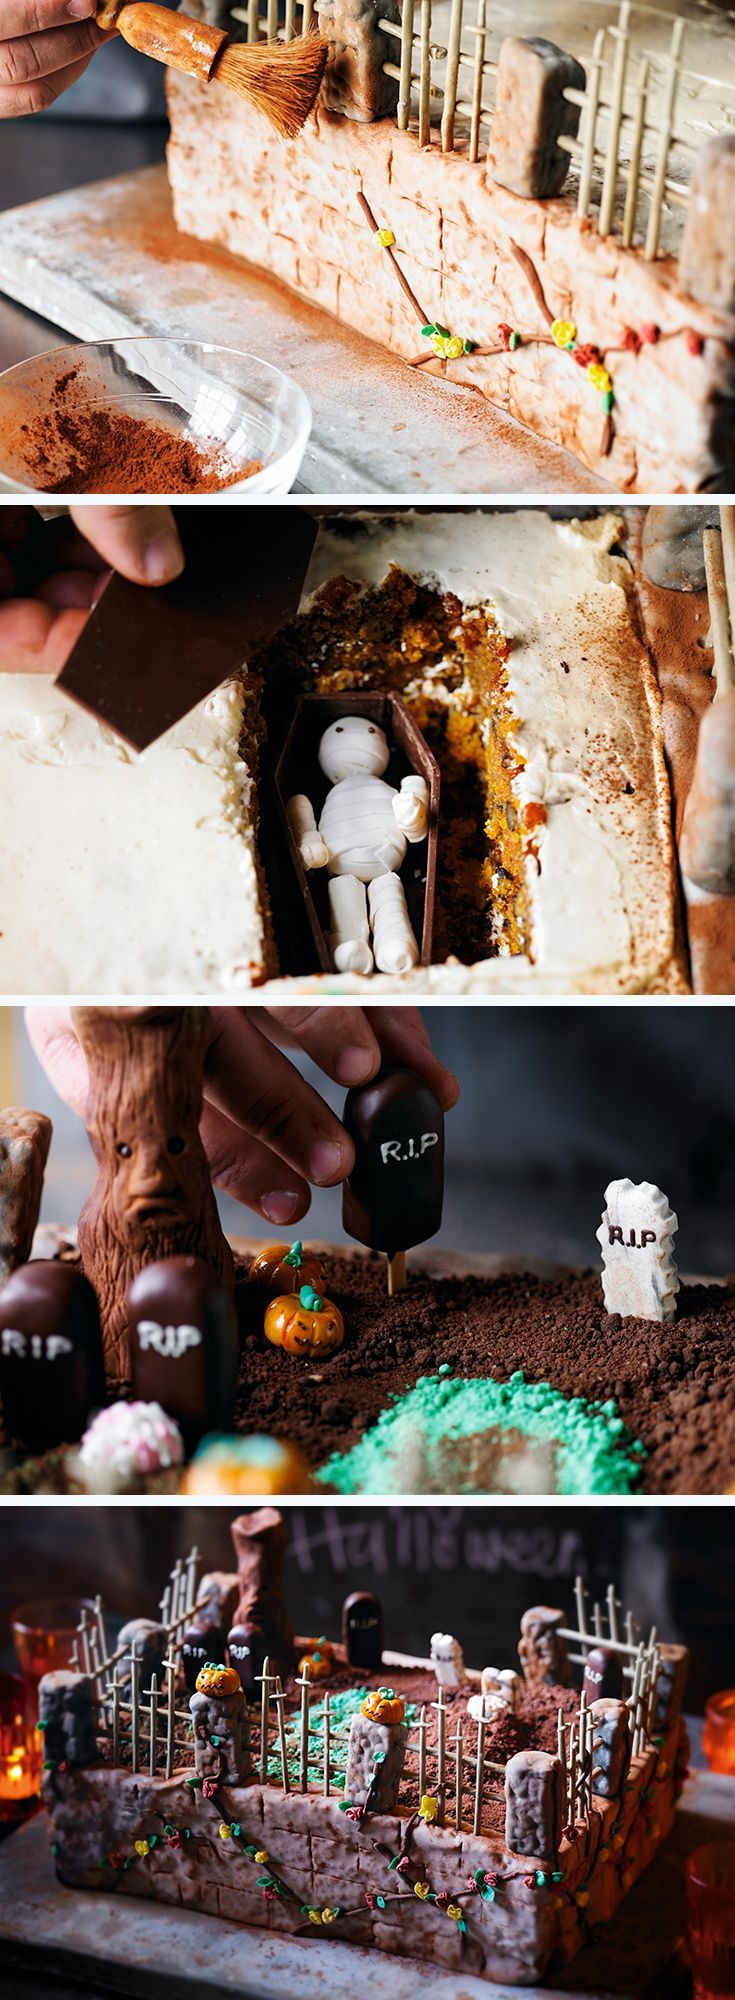 Possibly the best Halloween cake ever... Heston's Ultimate Halloween Cake recipe, complete with a zombie grave!: